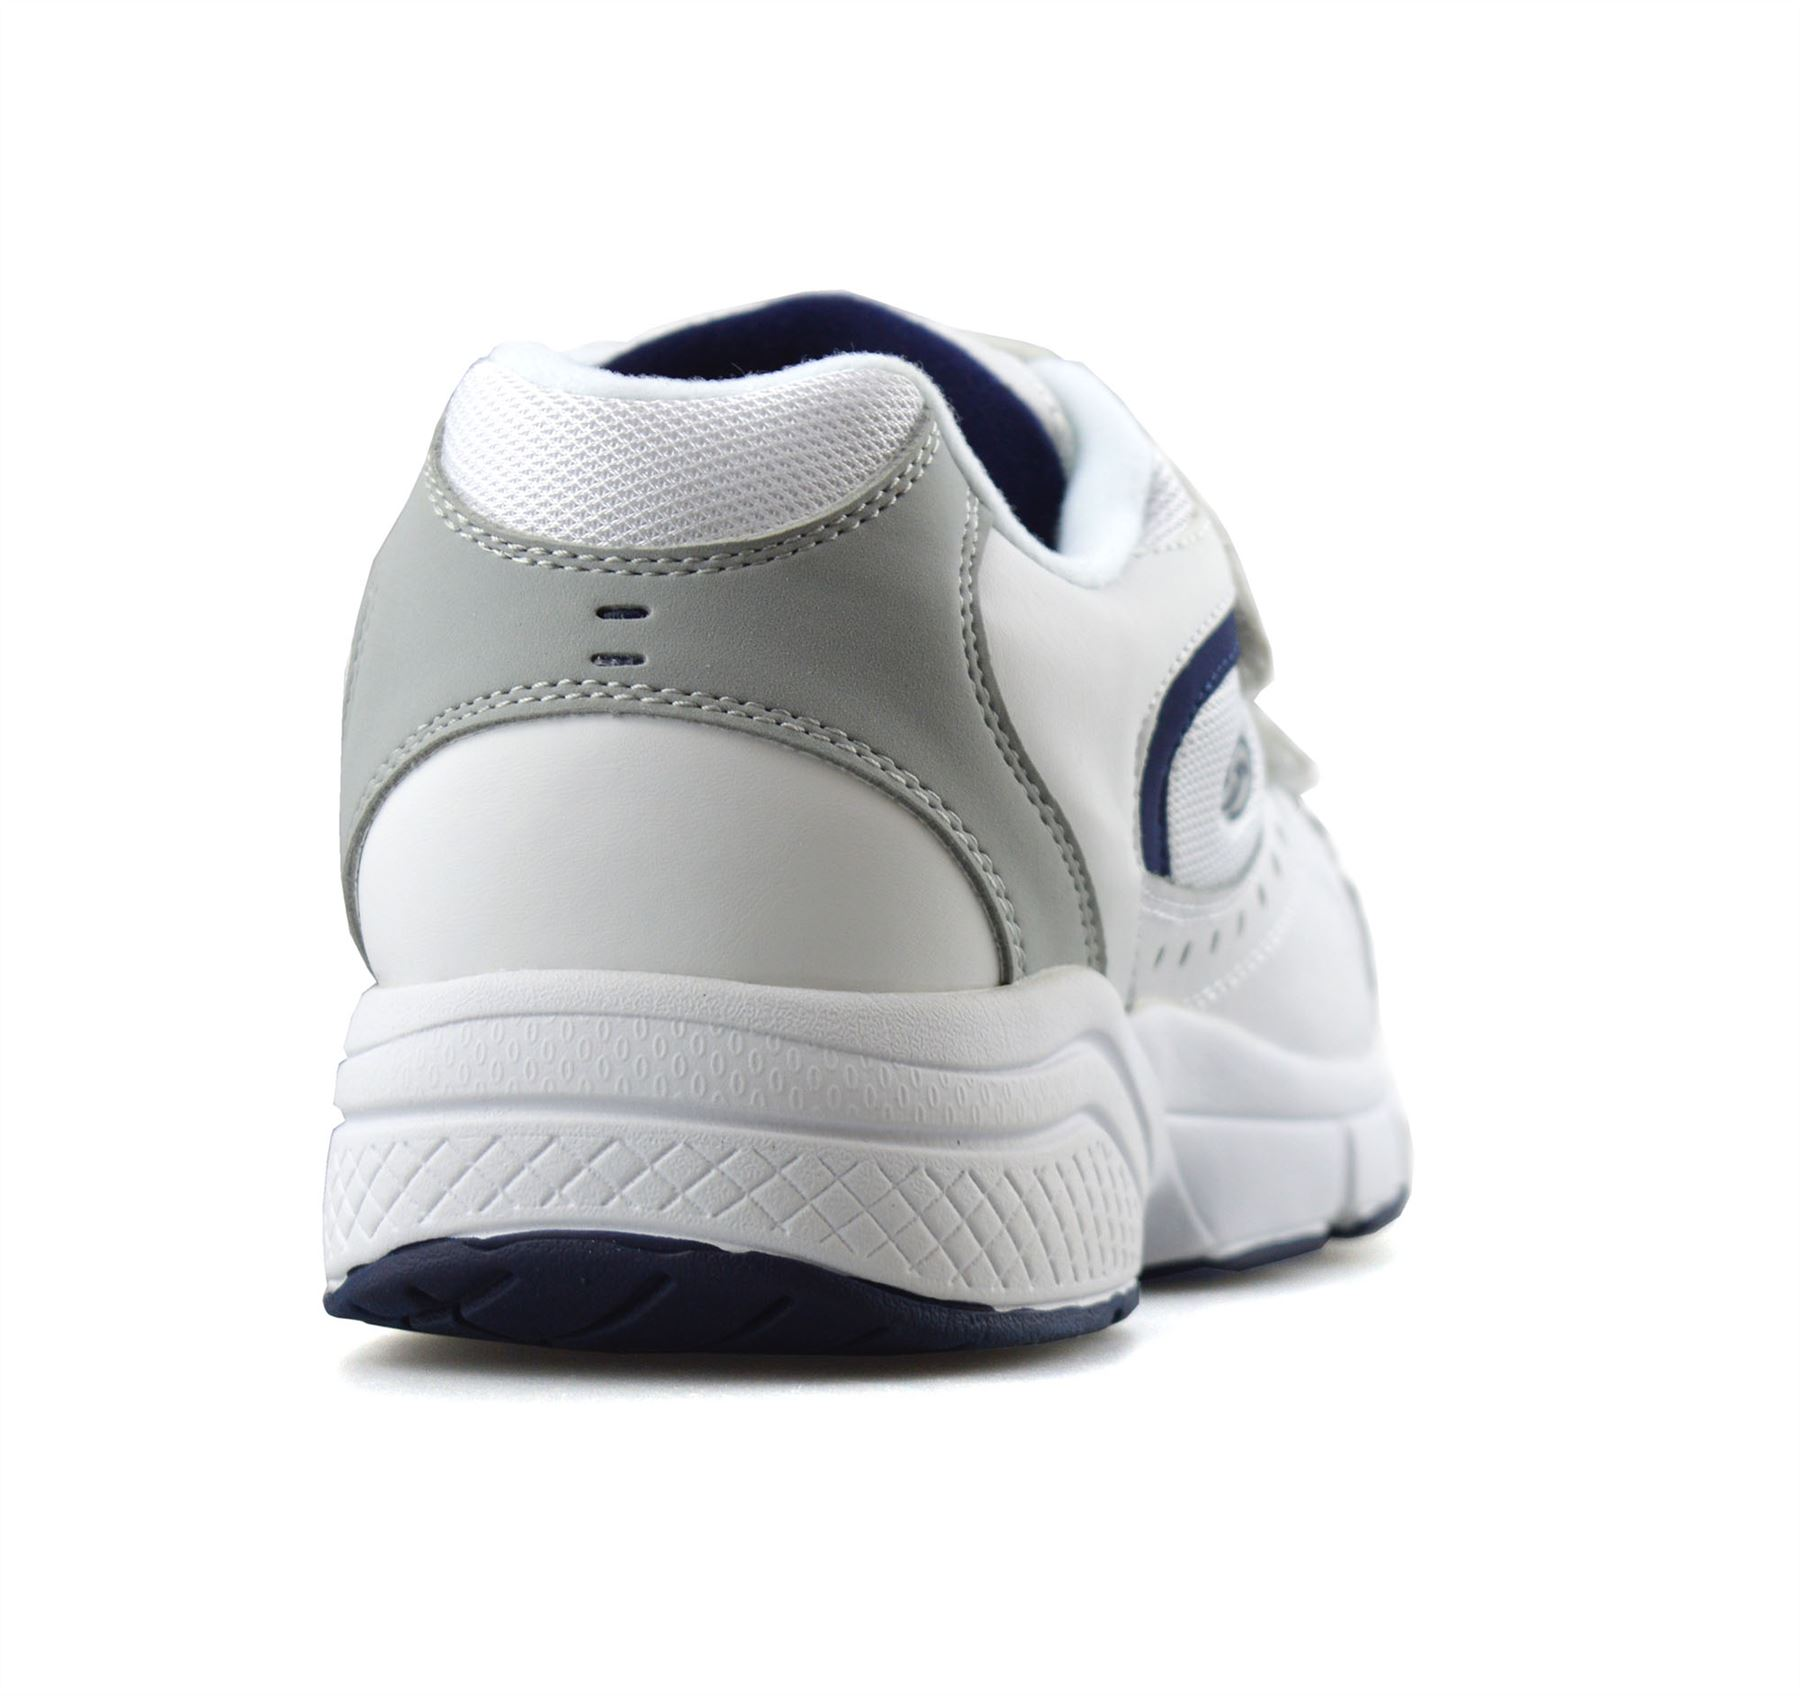 Mens-Dr-Scholls-Wide-Fit-Leather-Casual-Walking-Gym-Comfort-Trainers-Shoes-Size thumbnail 11